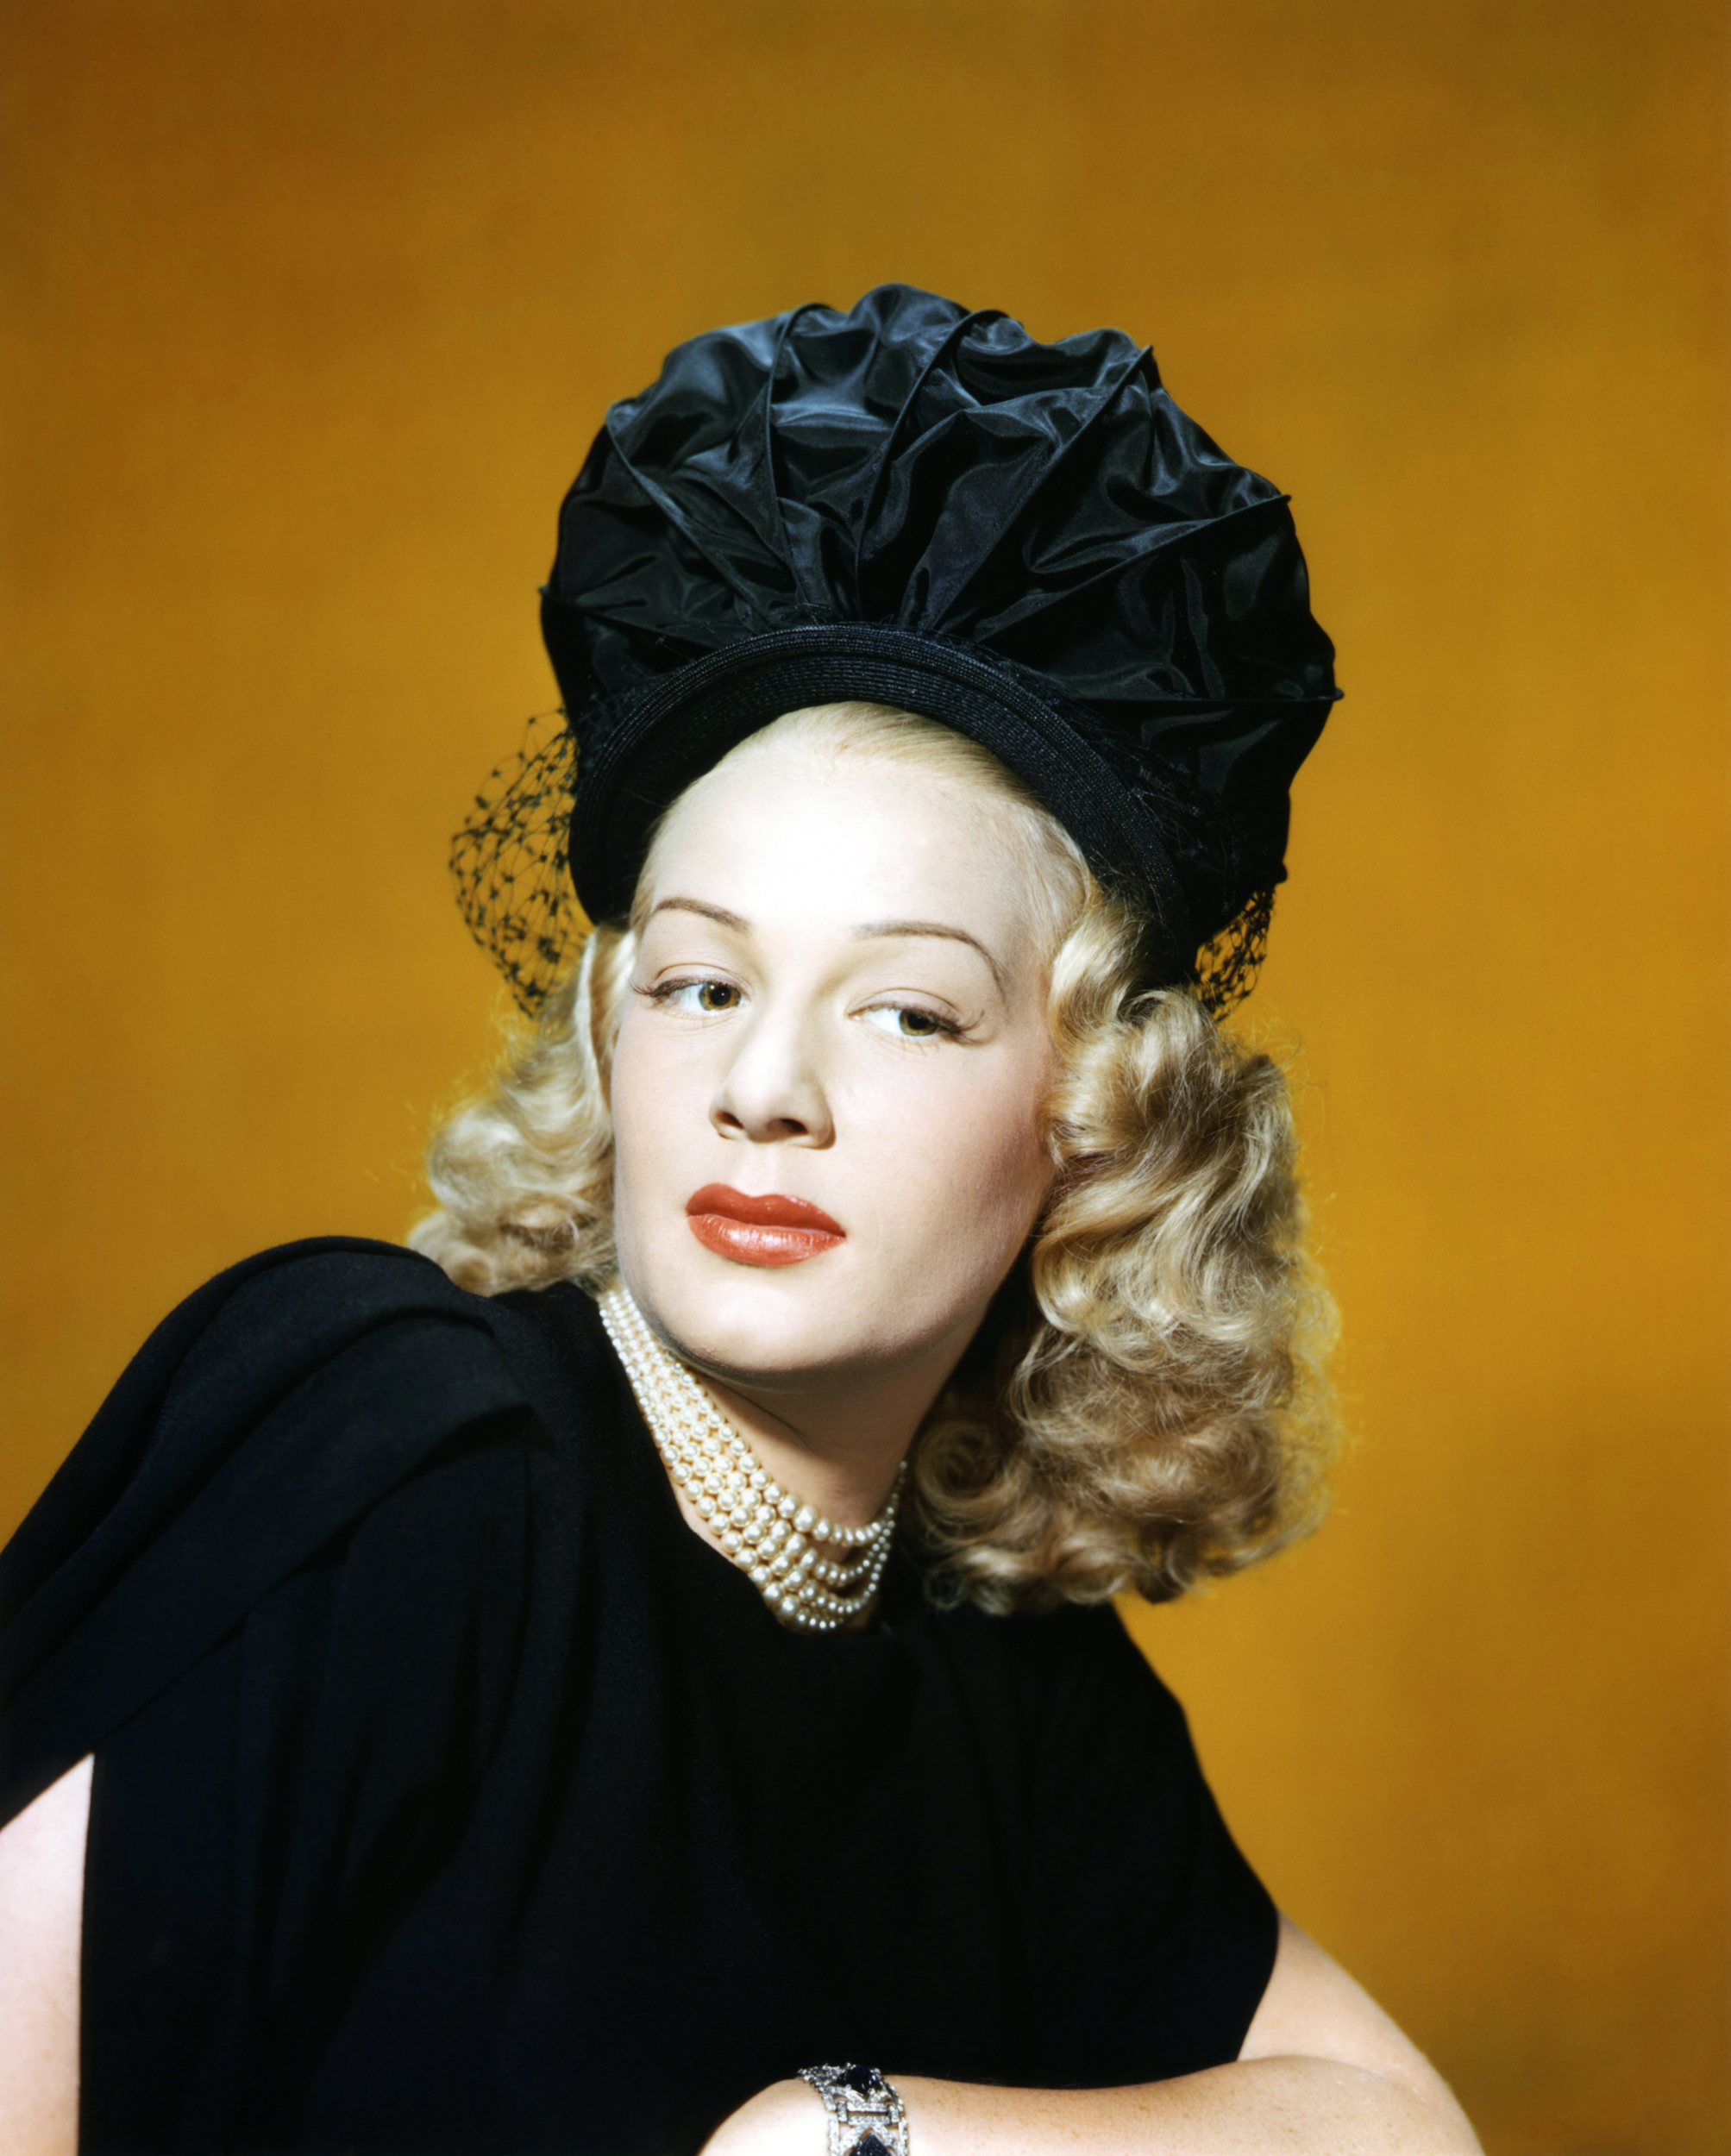 betty hutton he's a demon lyrics